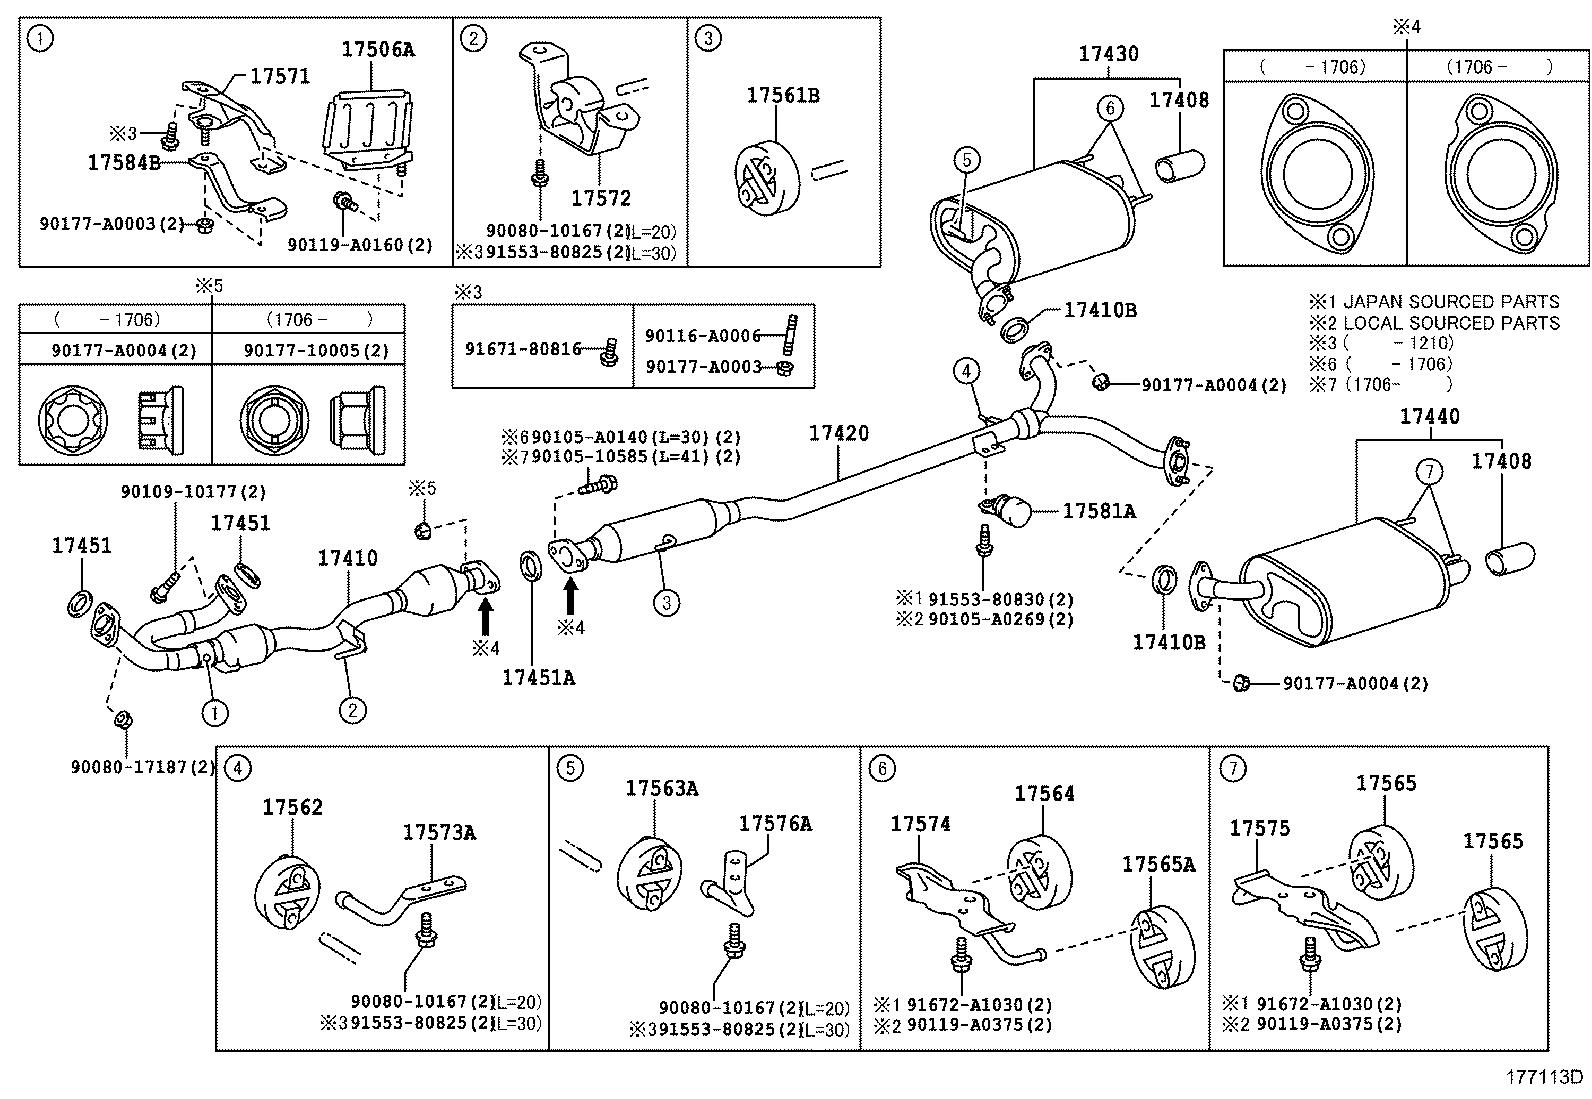 2015 Toyota Camry Exhaust Muffler  Without  Which  Universal